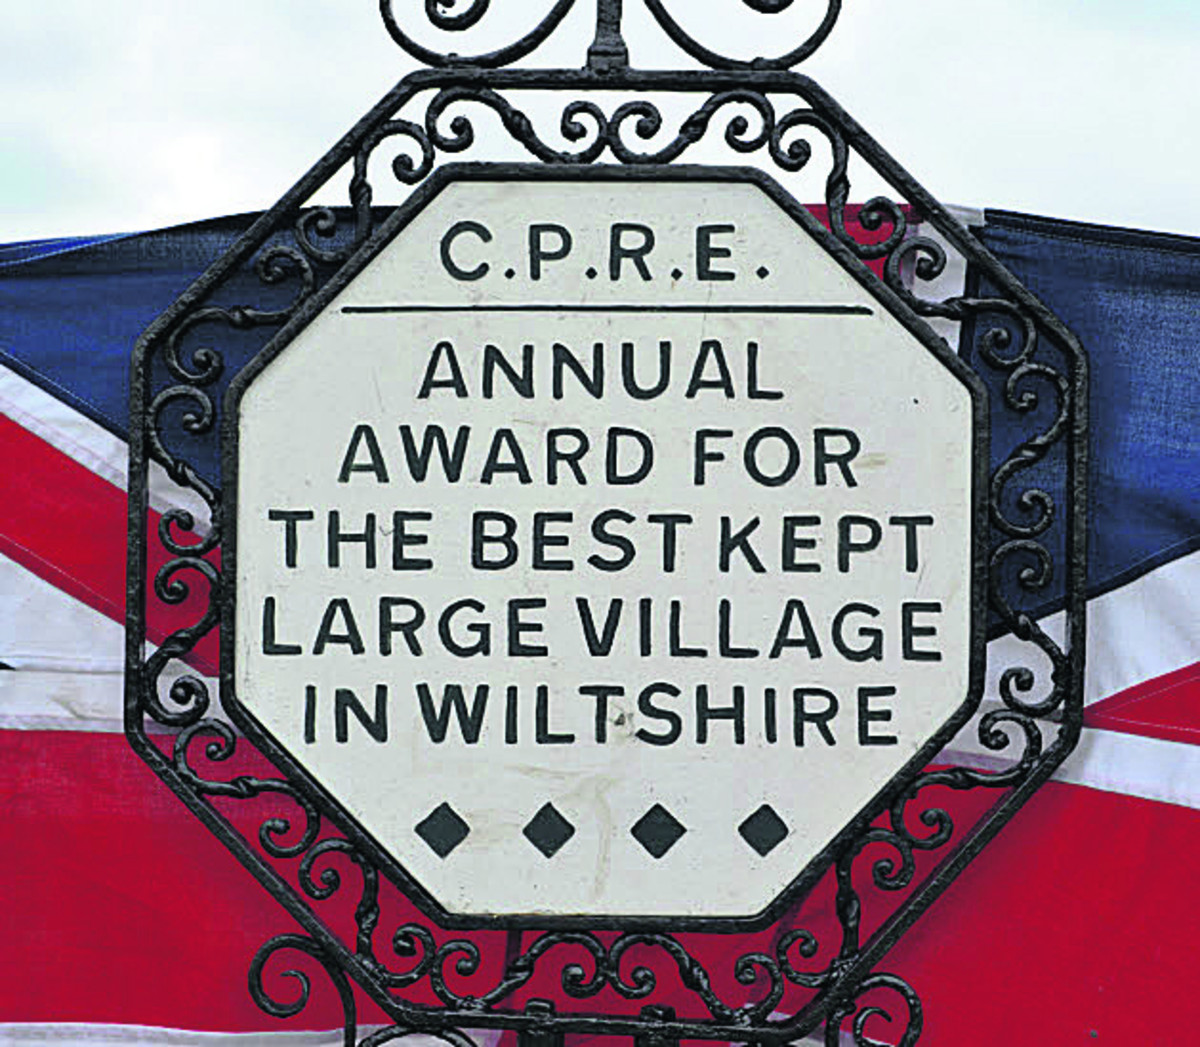 The Campaign to Protect Rural England (CPRE) is urging villages to enter the Wiltshire Best Kept Village Com